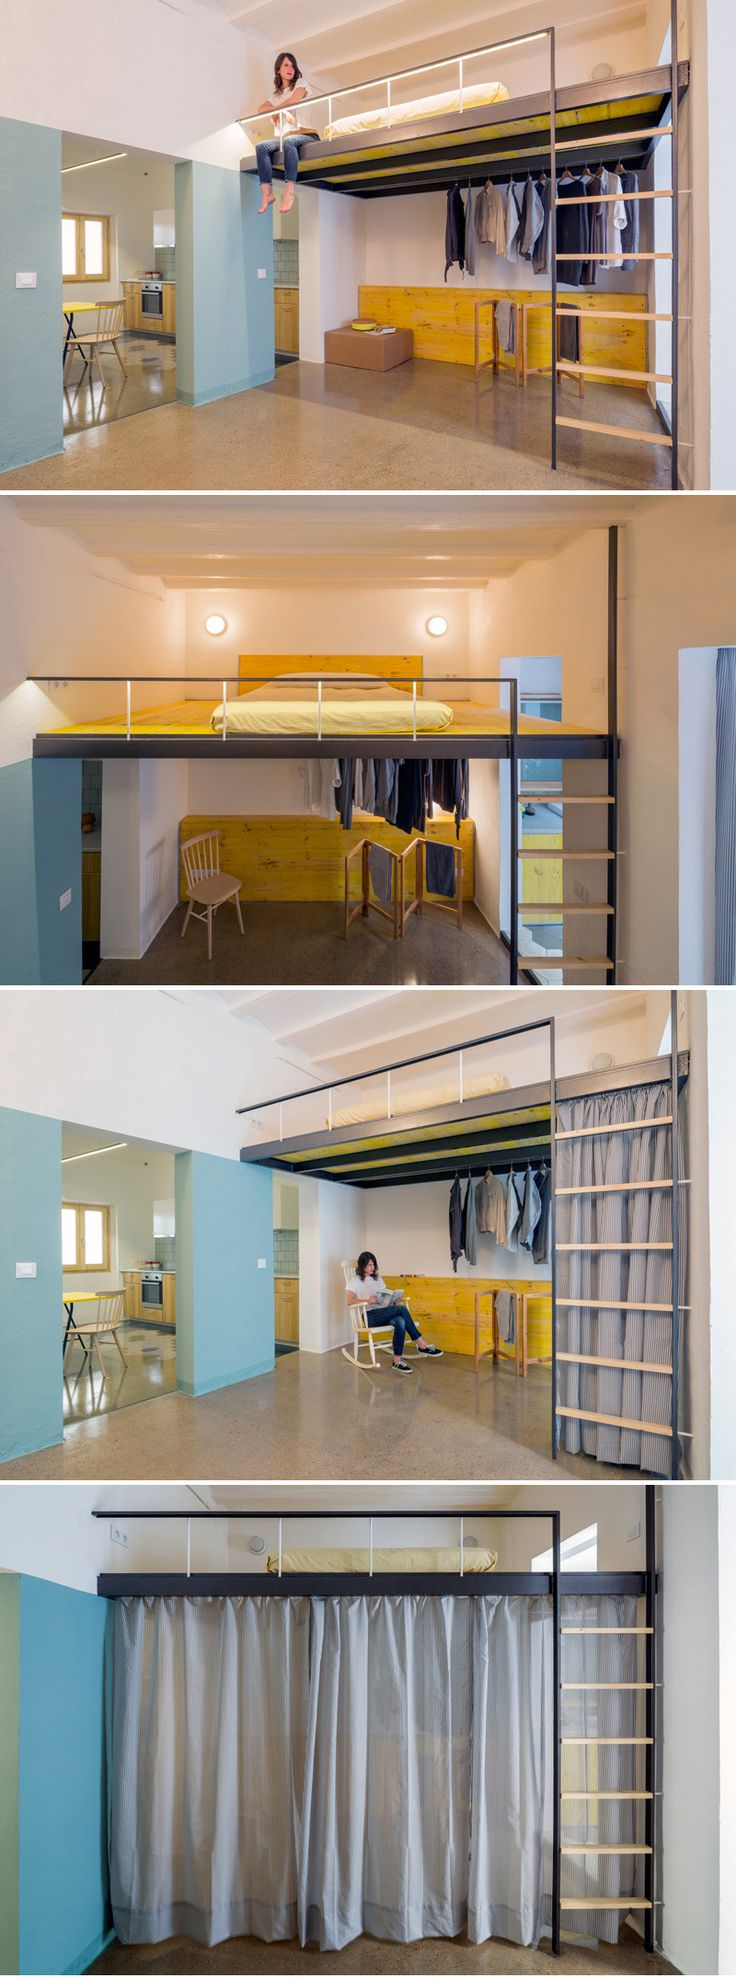 nookarchitects design the interior of a loft apartment in Barcelona